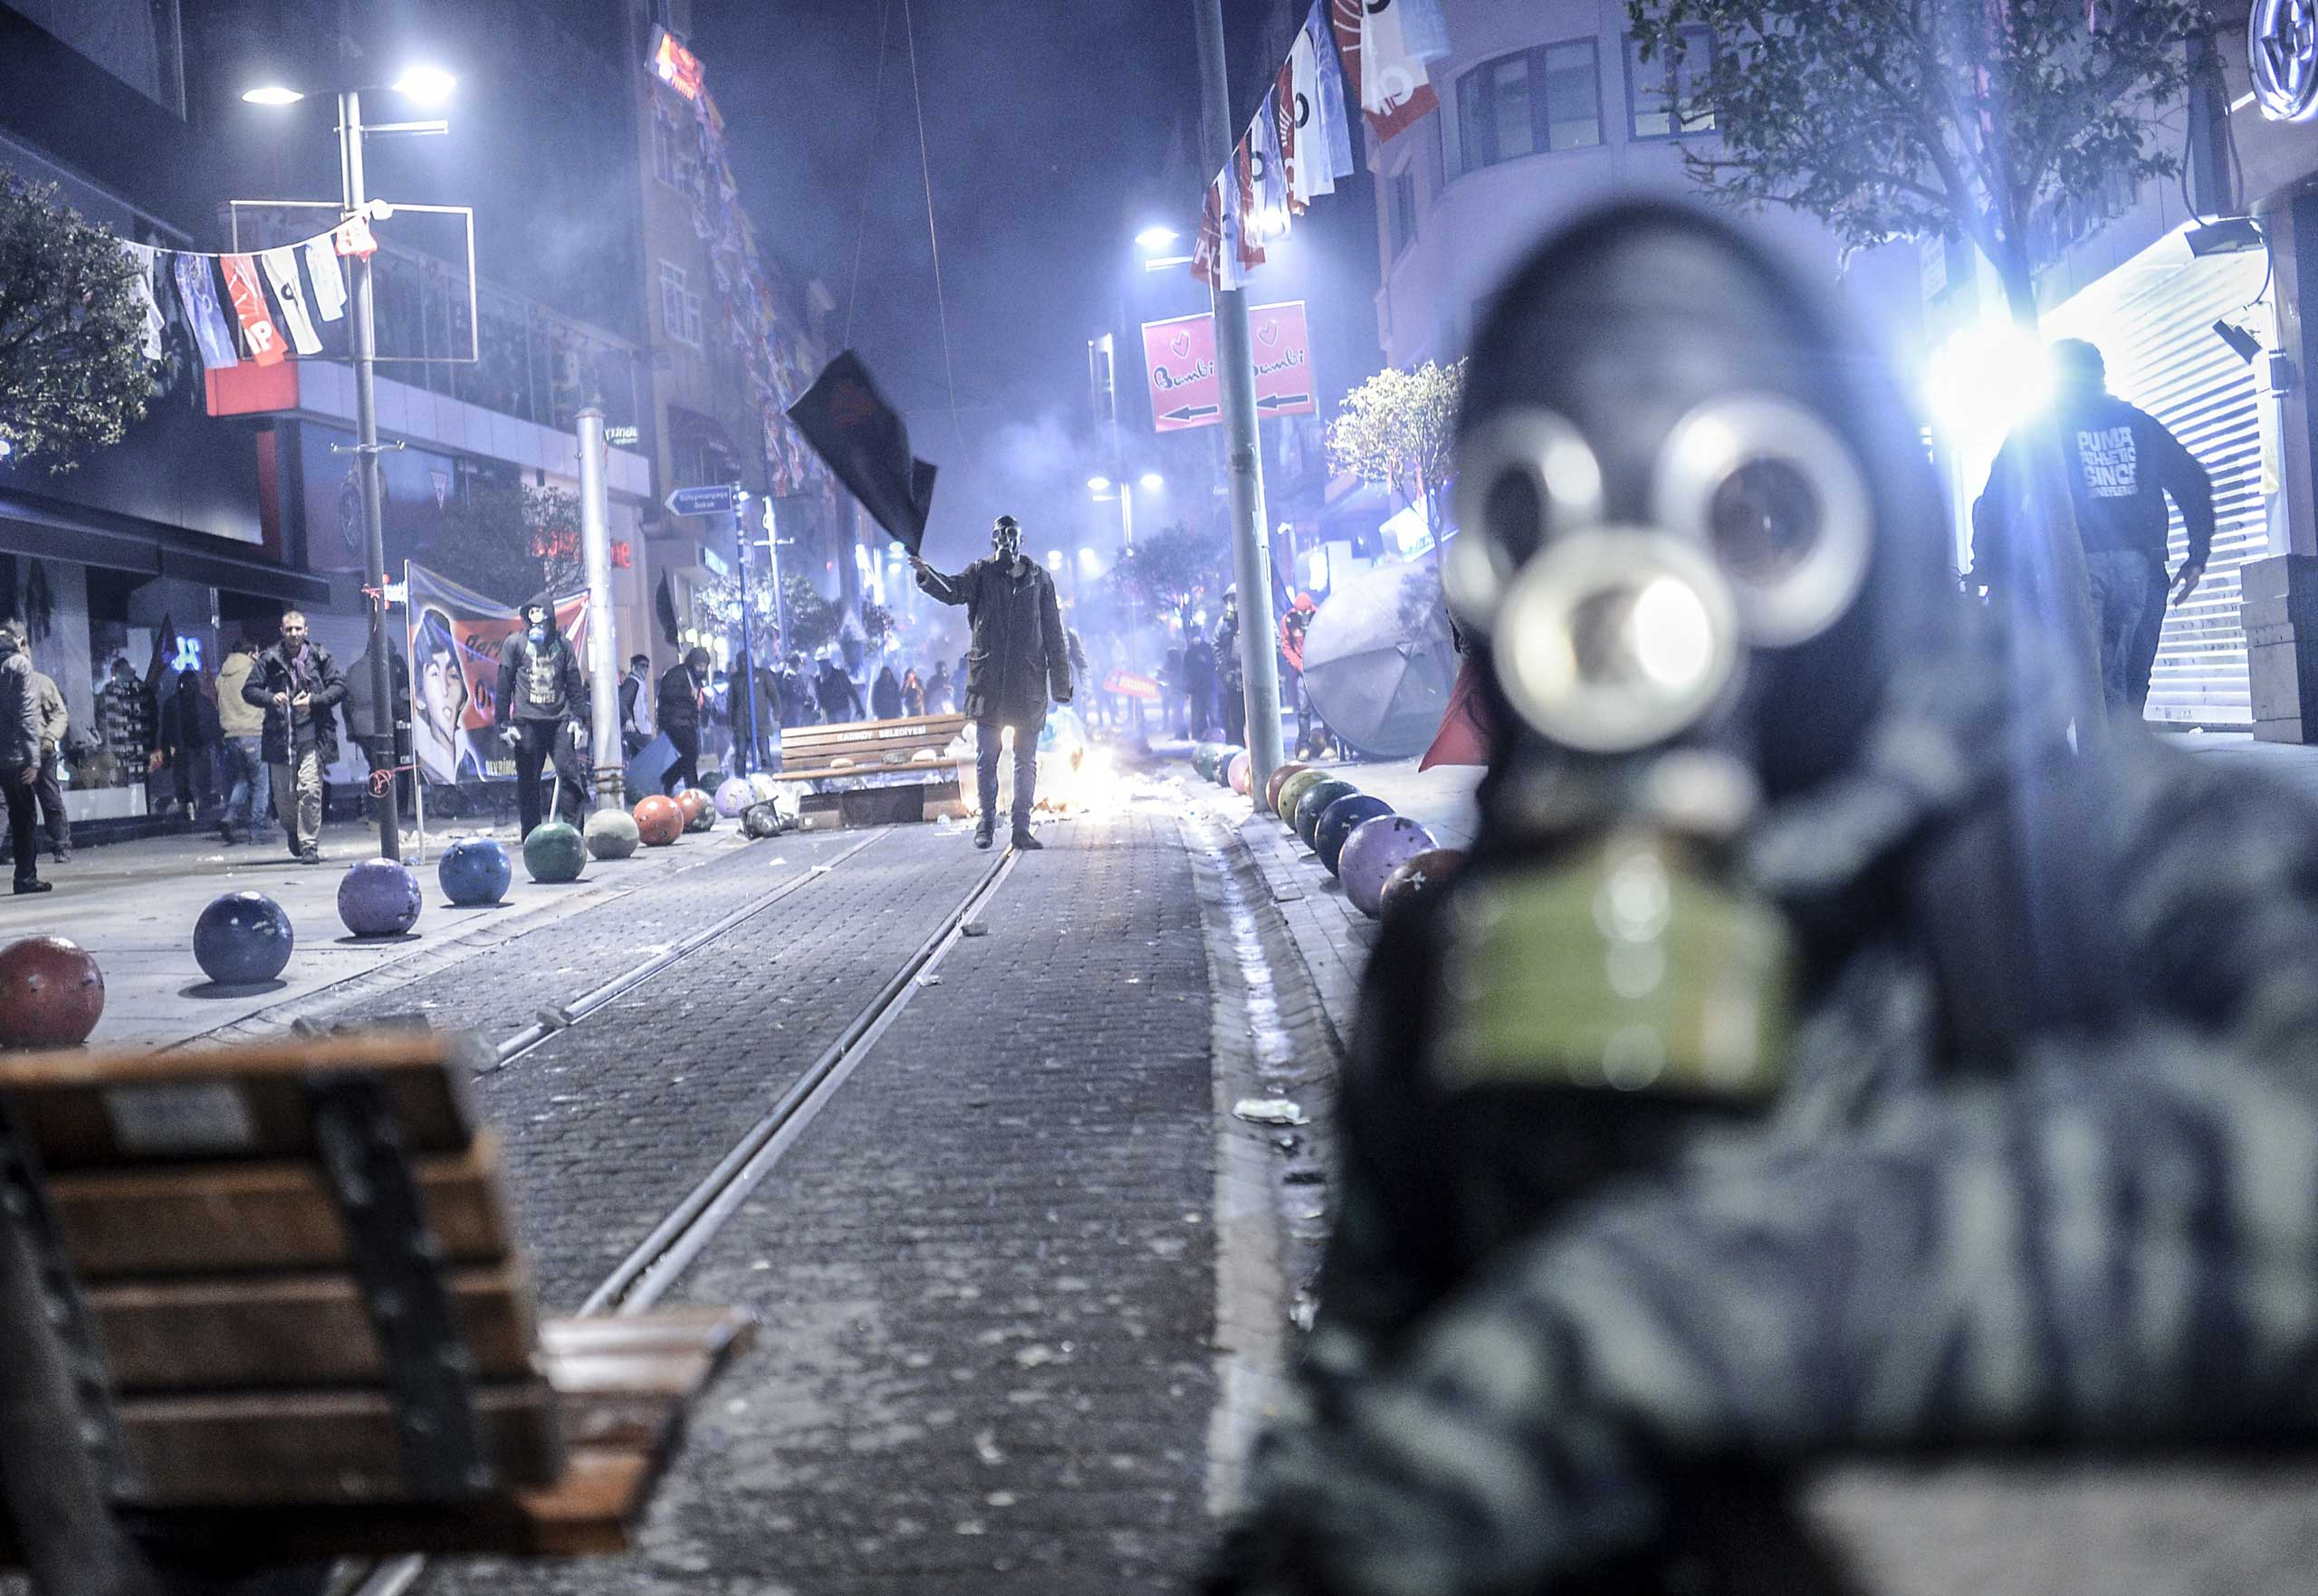 A protester waves a black flag during clashes with riot police in Kadikoy, on the Anatolian side of Istanbul, on March 11, 2014.